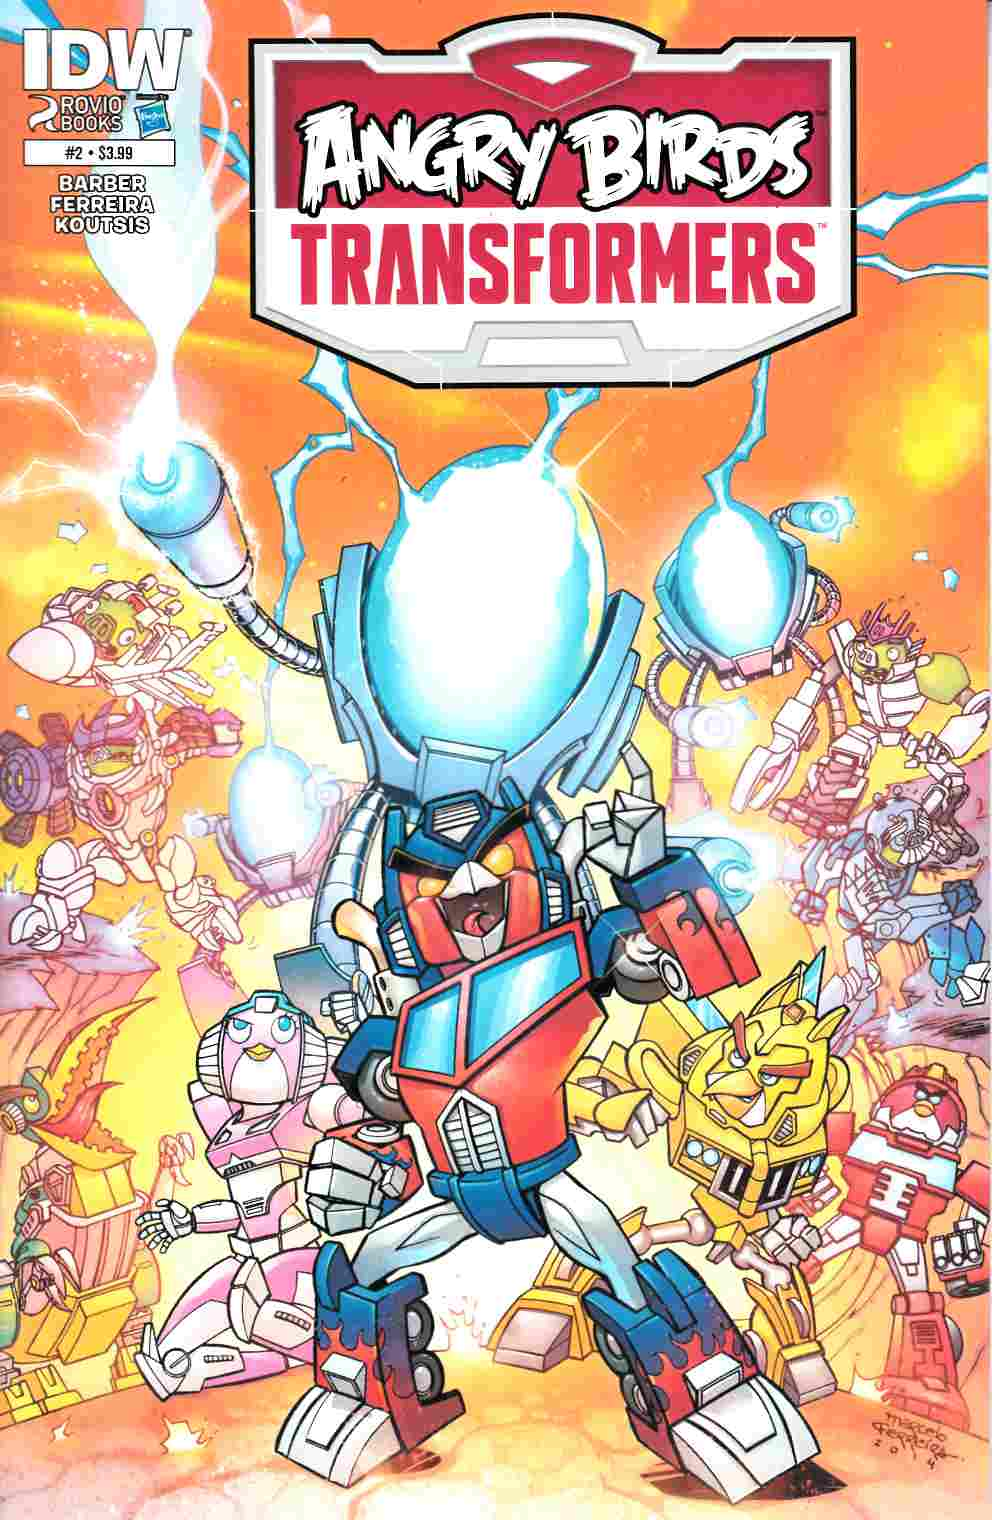 Angry Birds Transformers #2 [IDW Comic]